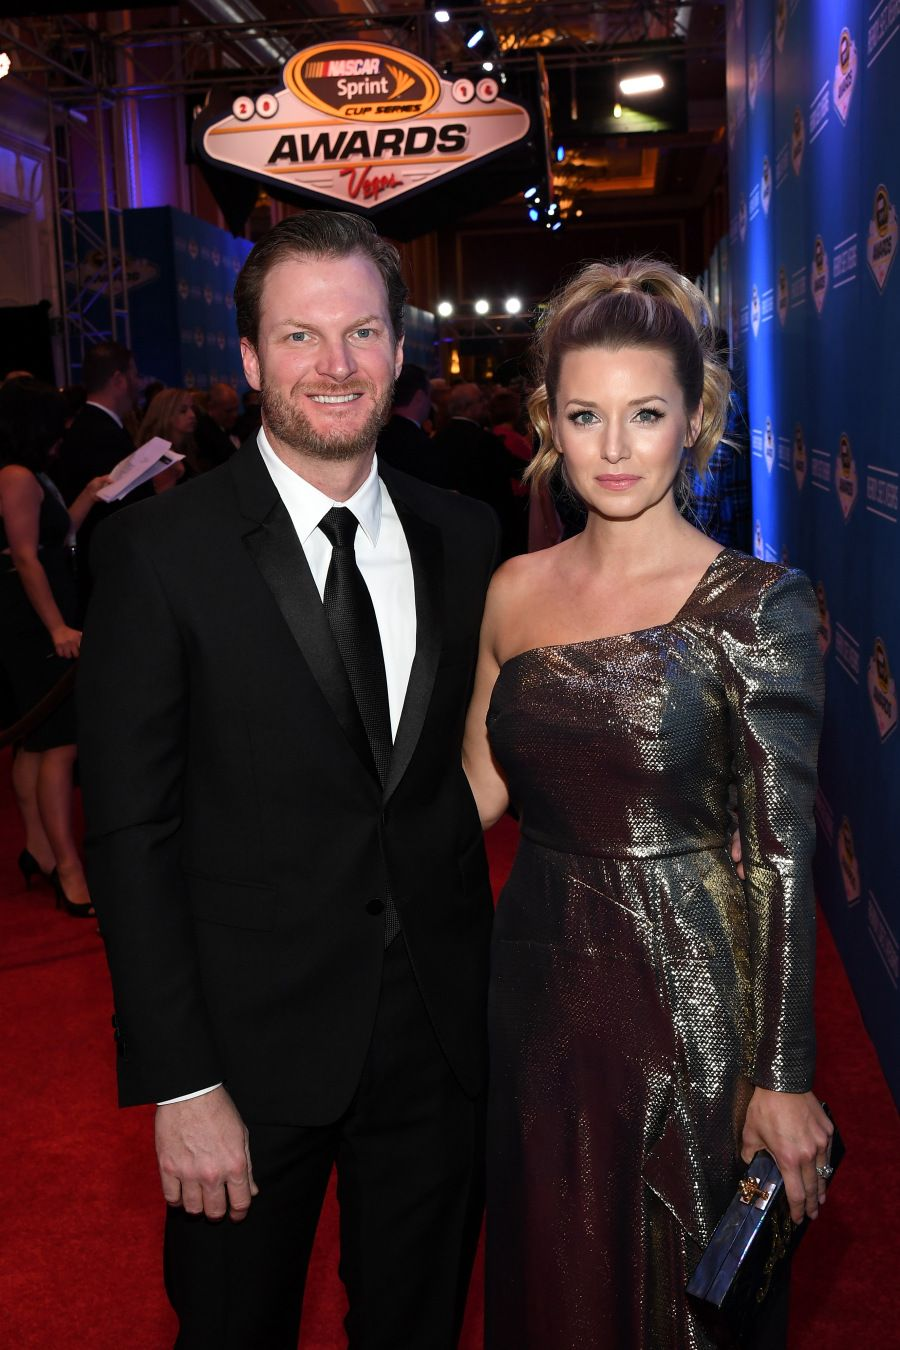 Dale Earnhardt Jr. wins 14th consecutive Most Popular